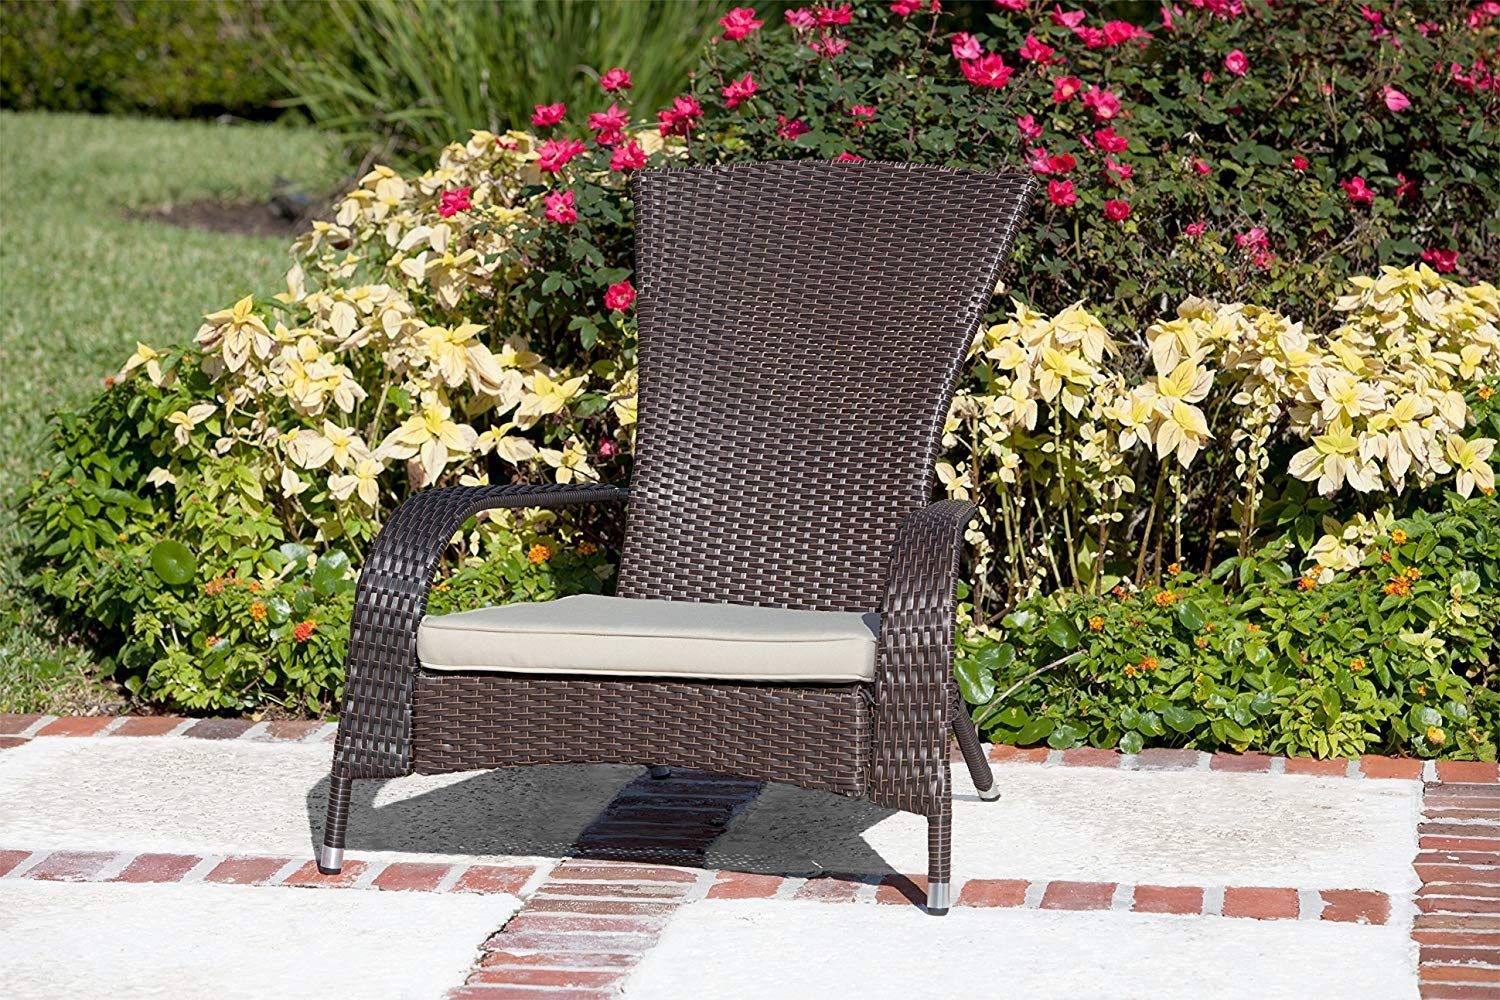 Adirondack Chairs For Sale In 2020 Lounge Chair Outdoor Outdoor Chairs Adirondack Chairs Patio